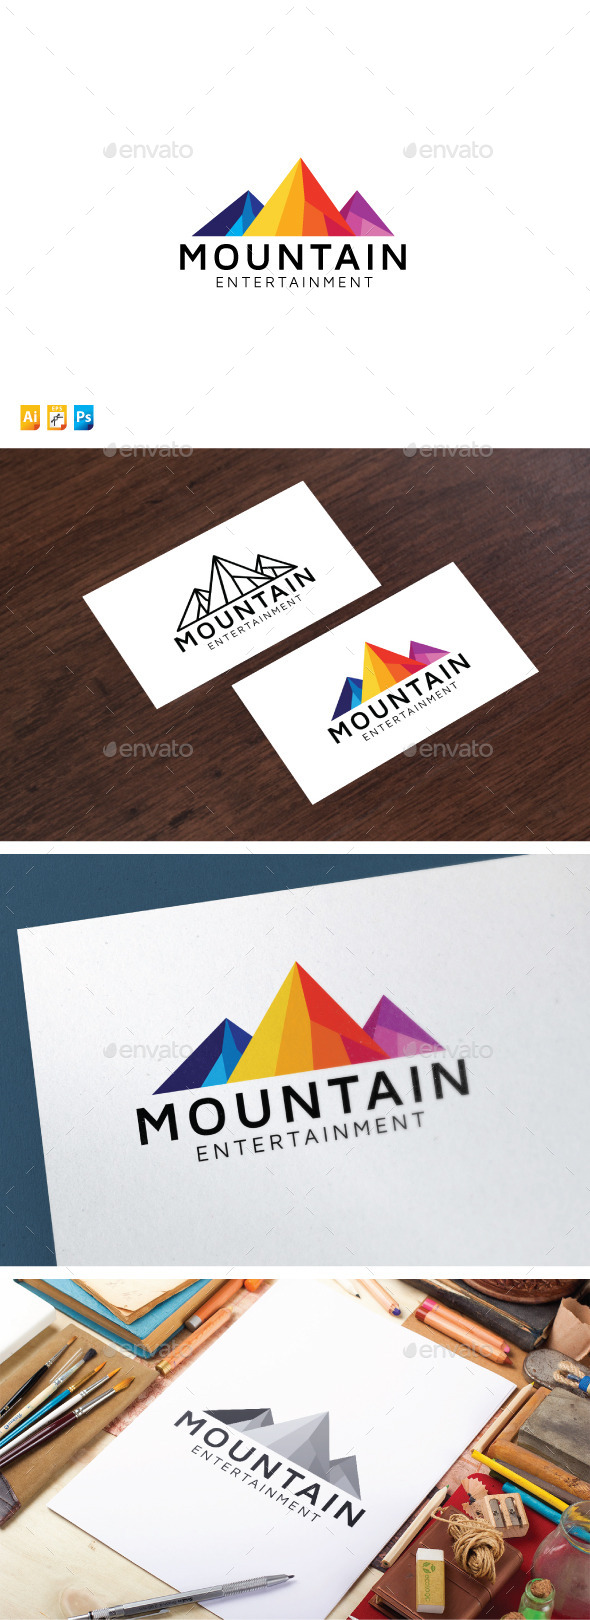 Mountain Entertainment